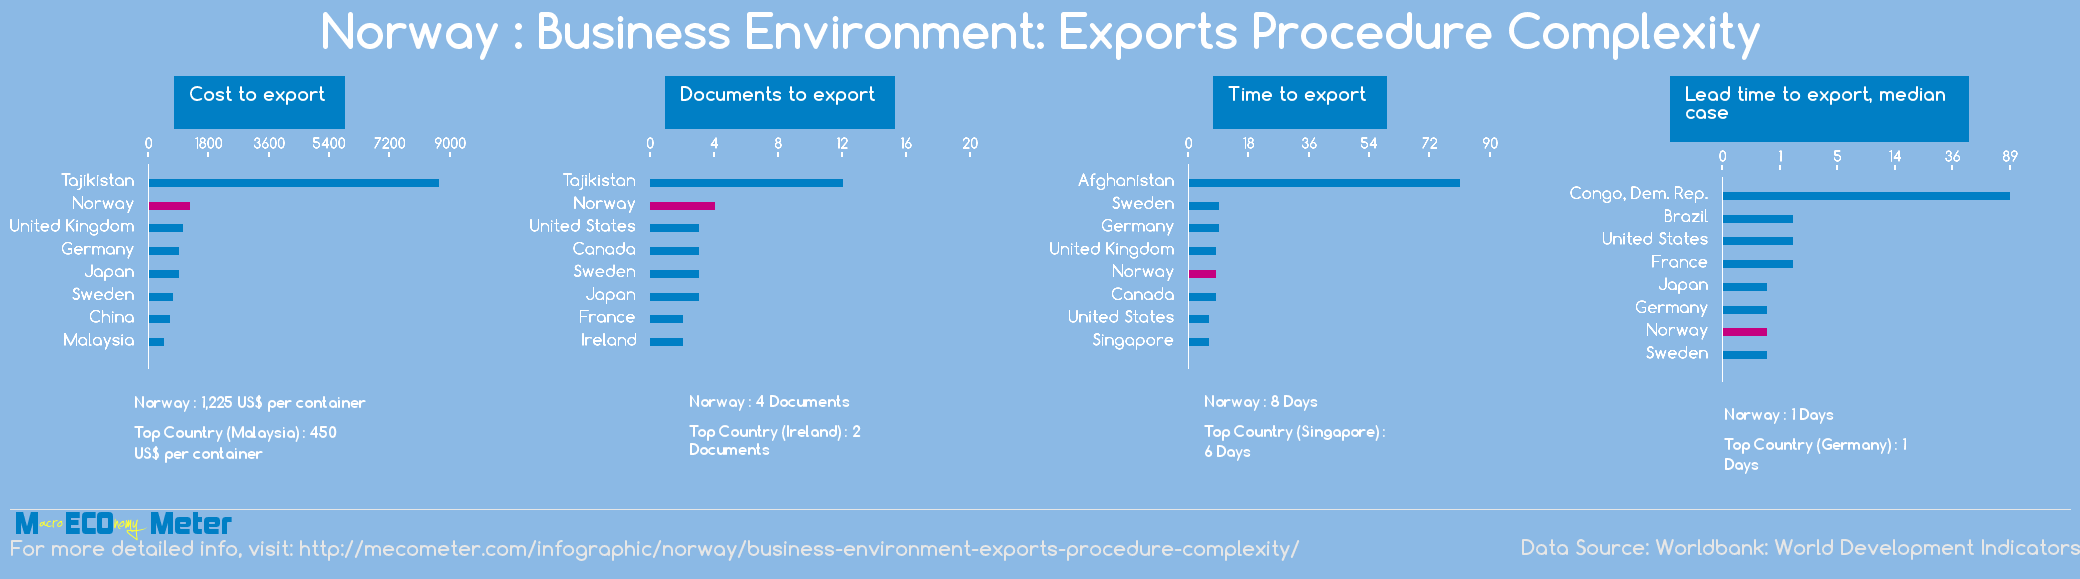 Norway : Business Environment: Exports Procedure Complexity